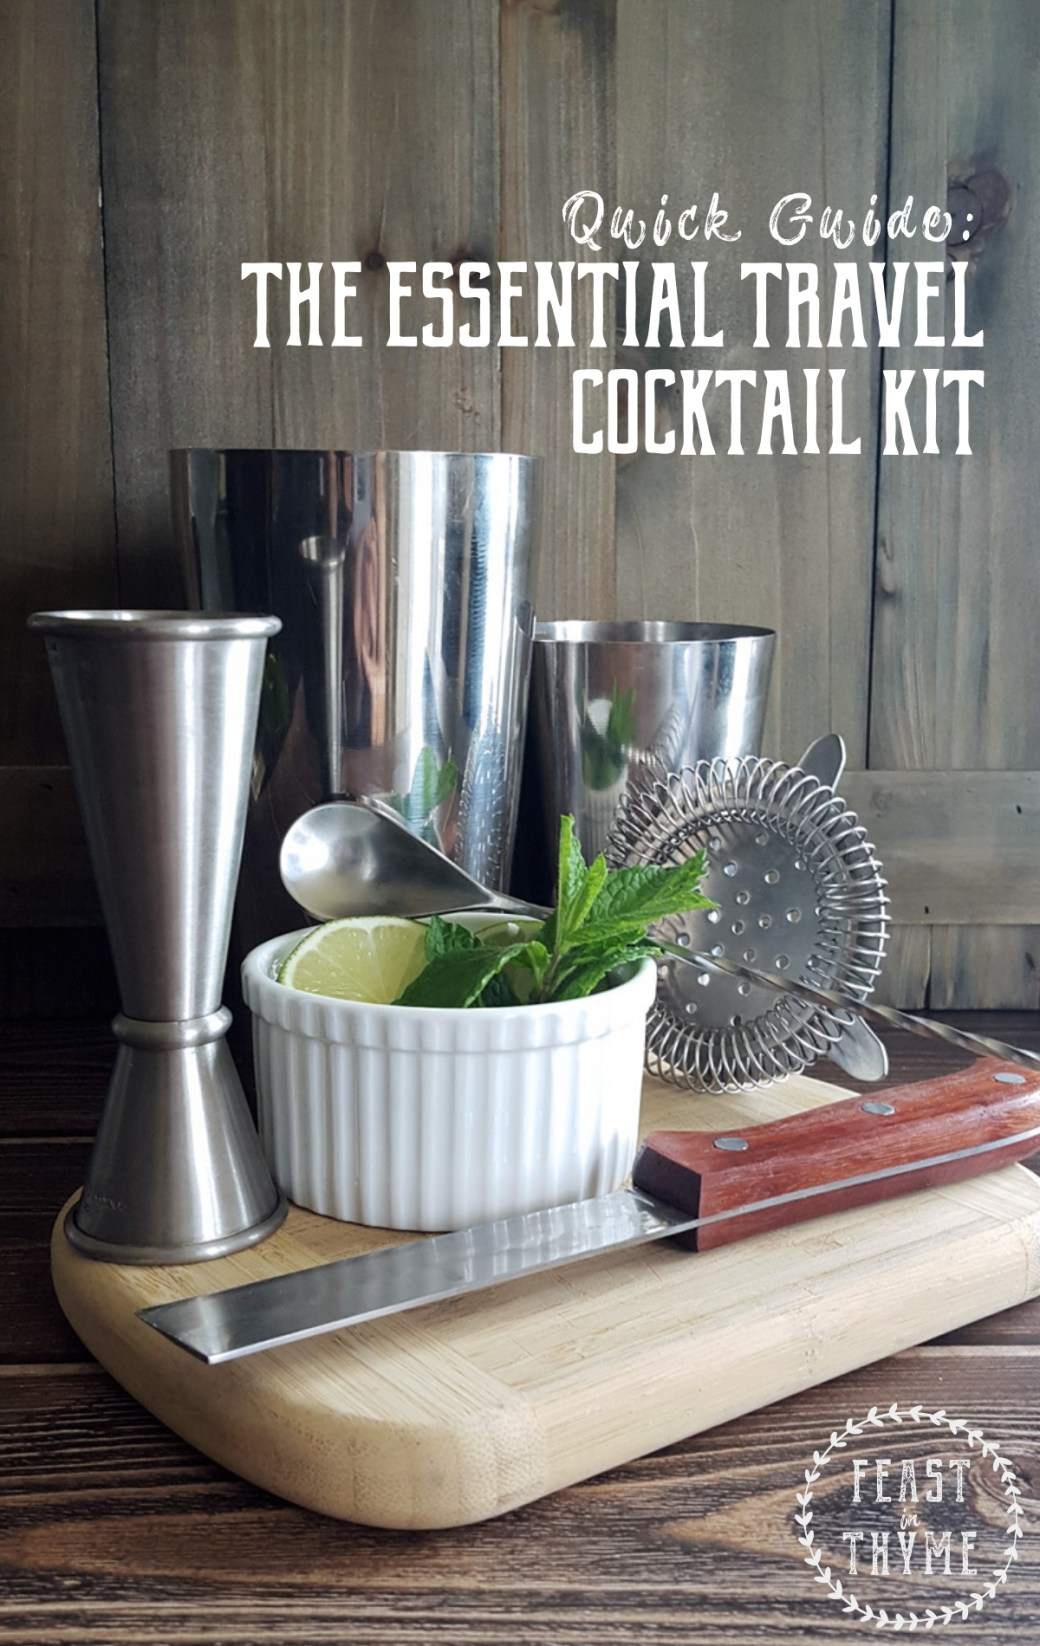 A Guide to the Essential Travel Cocktail Kit